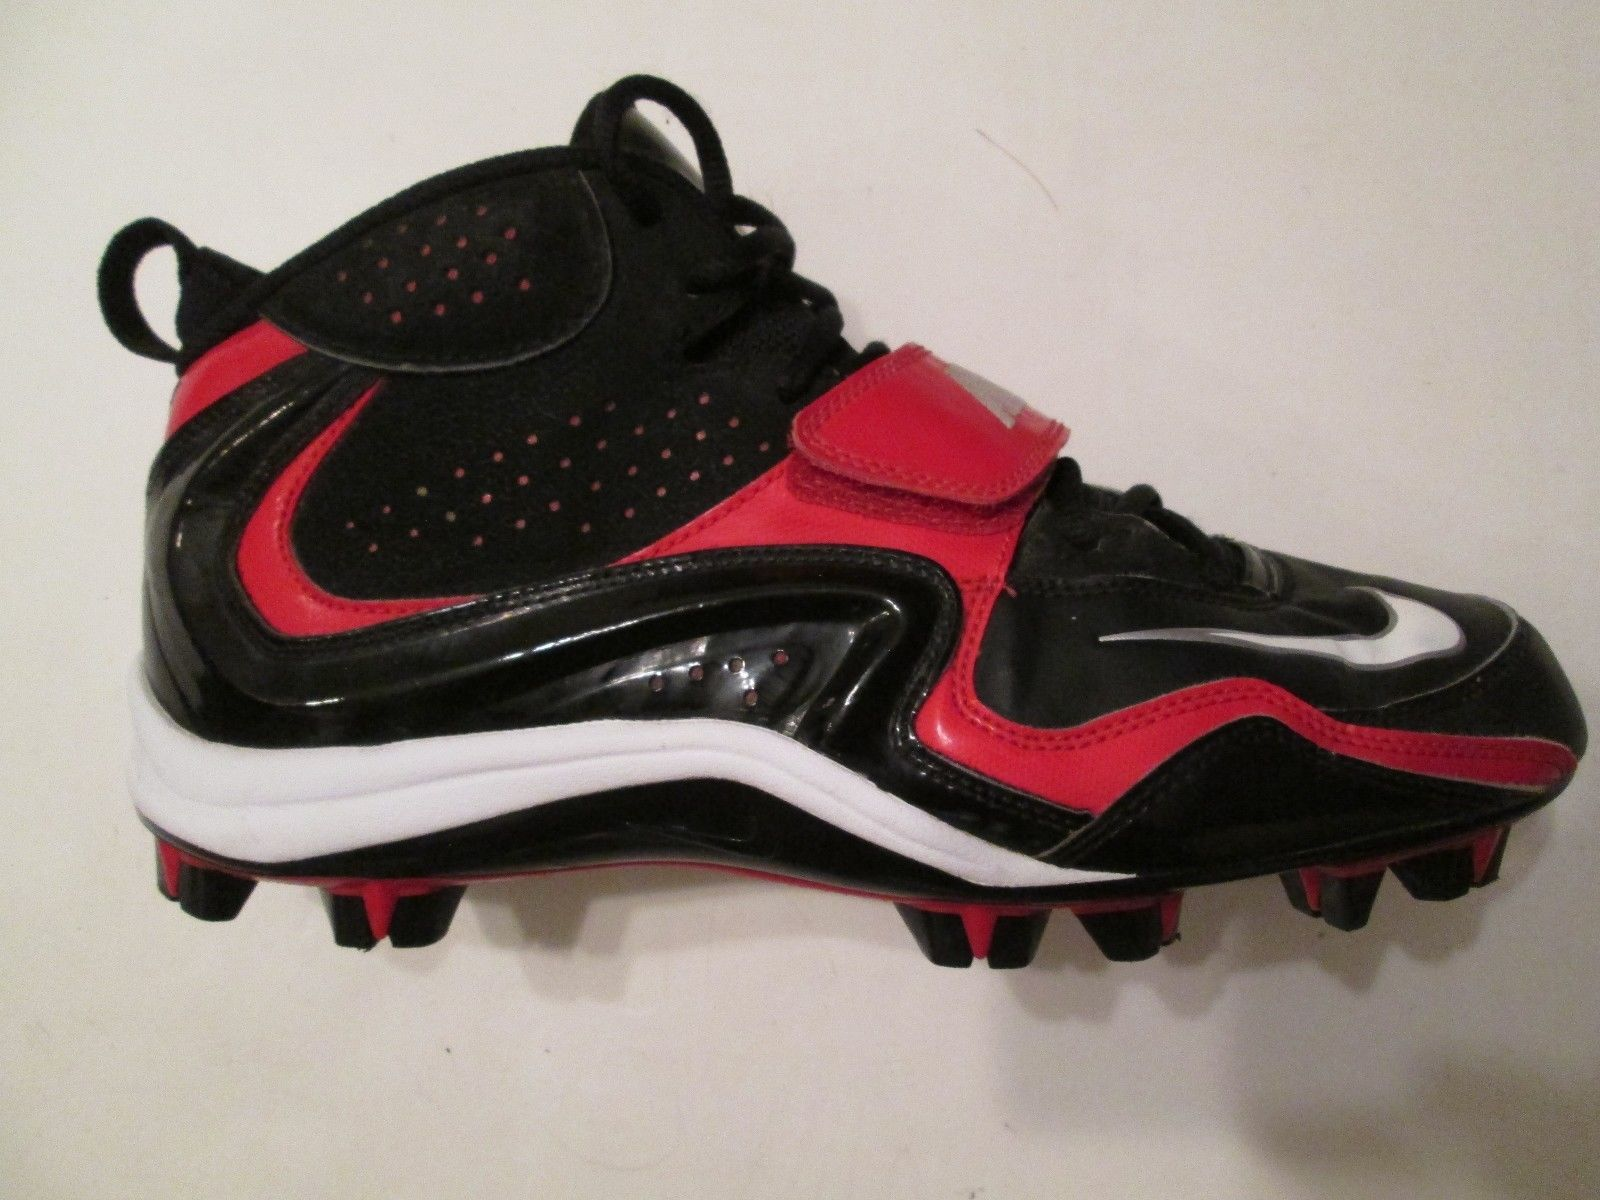 Nike Men s Boy s Cleats Size US 10 Football and 50 similar items. 57 127c5a2fa4b